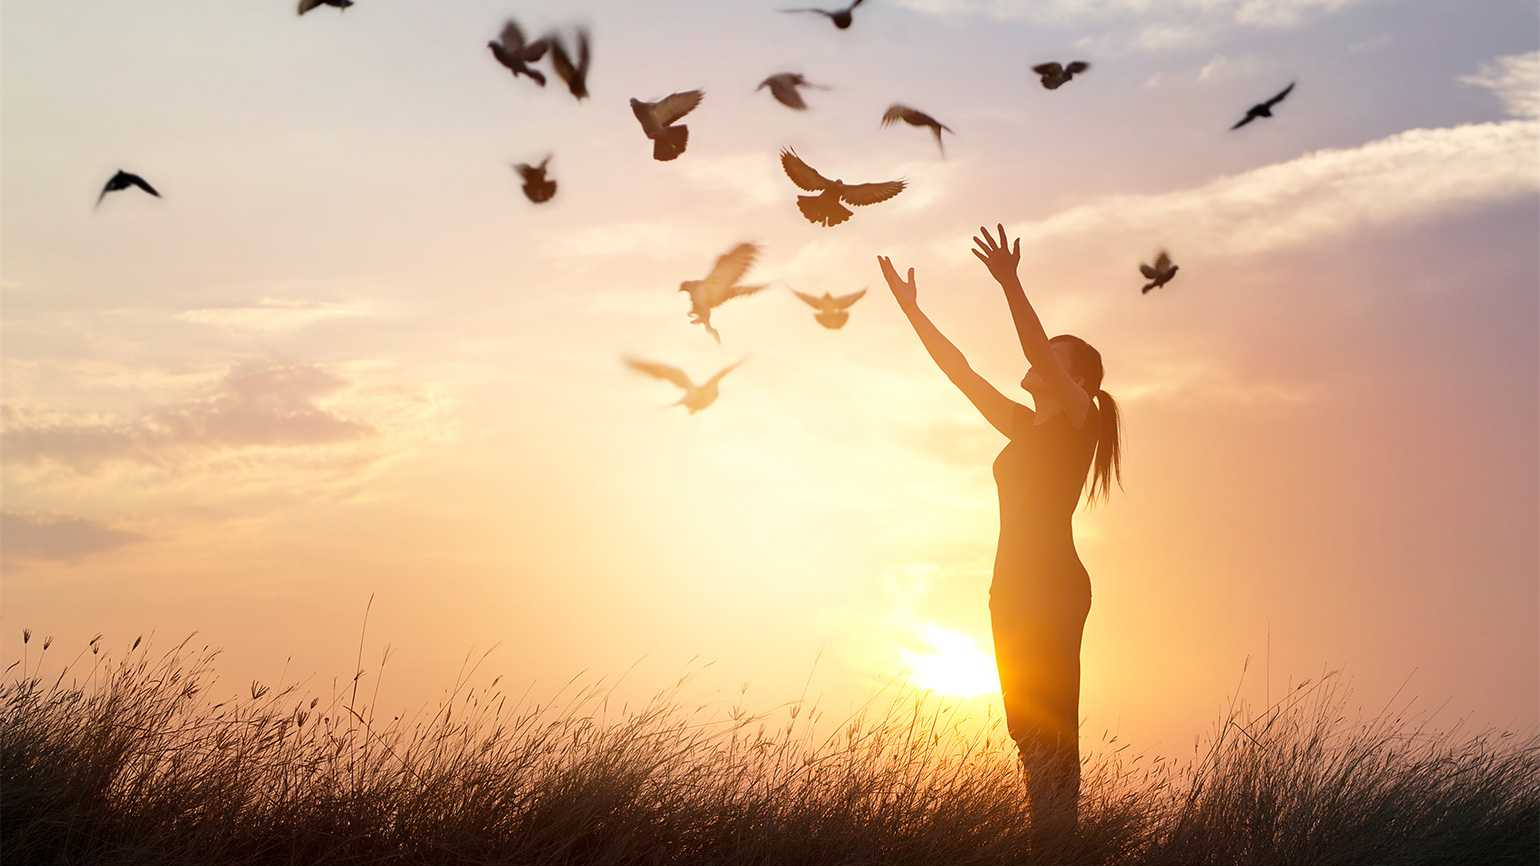 A woman with arms upraised at sunrise, a flock of doves flying around her